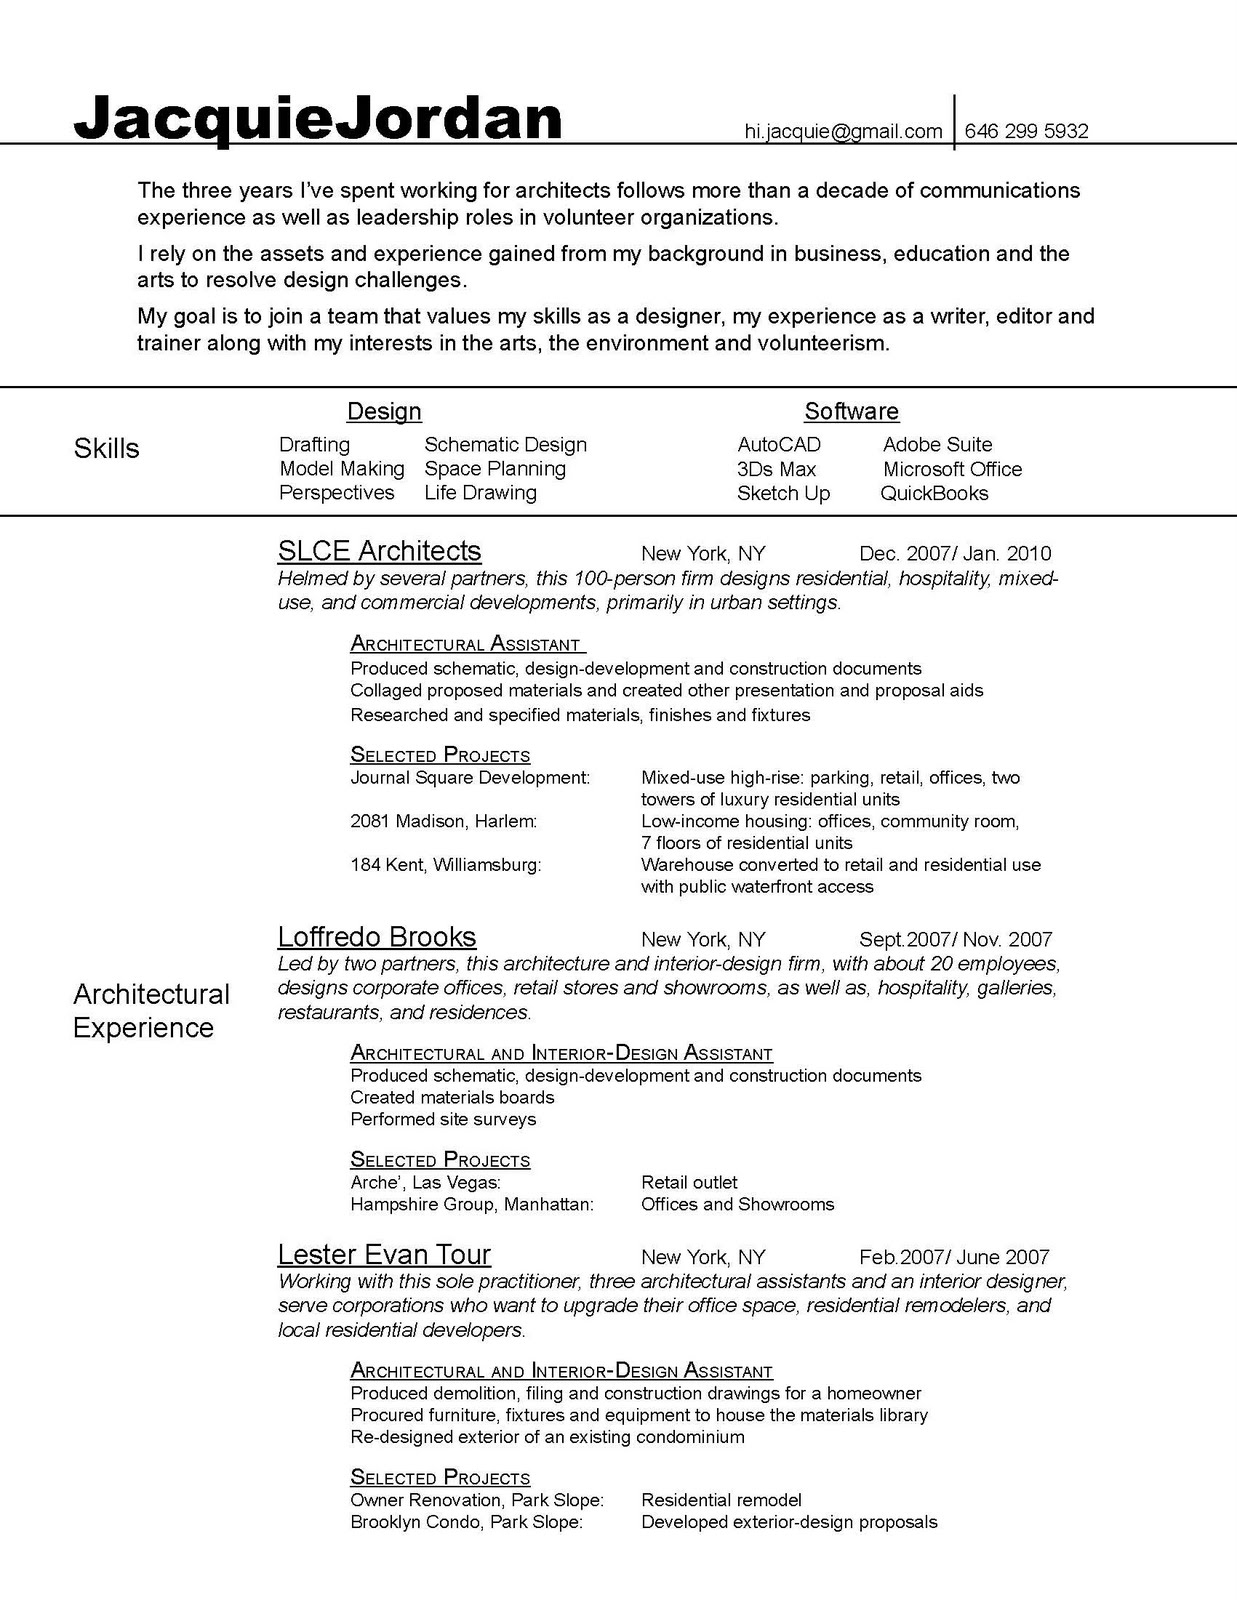 internship cover letter interior design ejemplo de curriculum academic profile resume cover letter sample sheet on - Ejemplo De Cover Letter